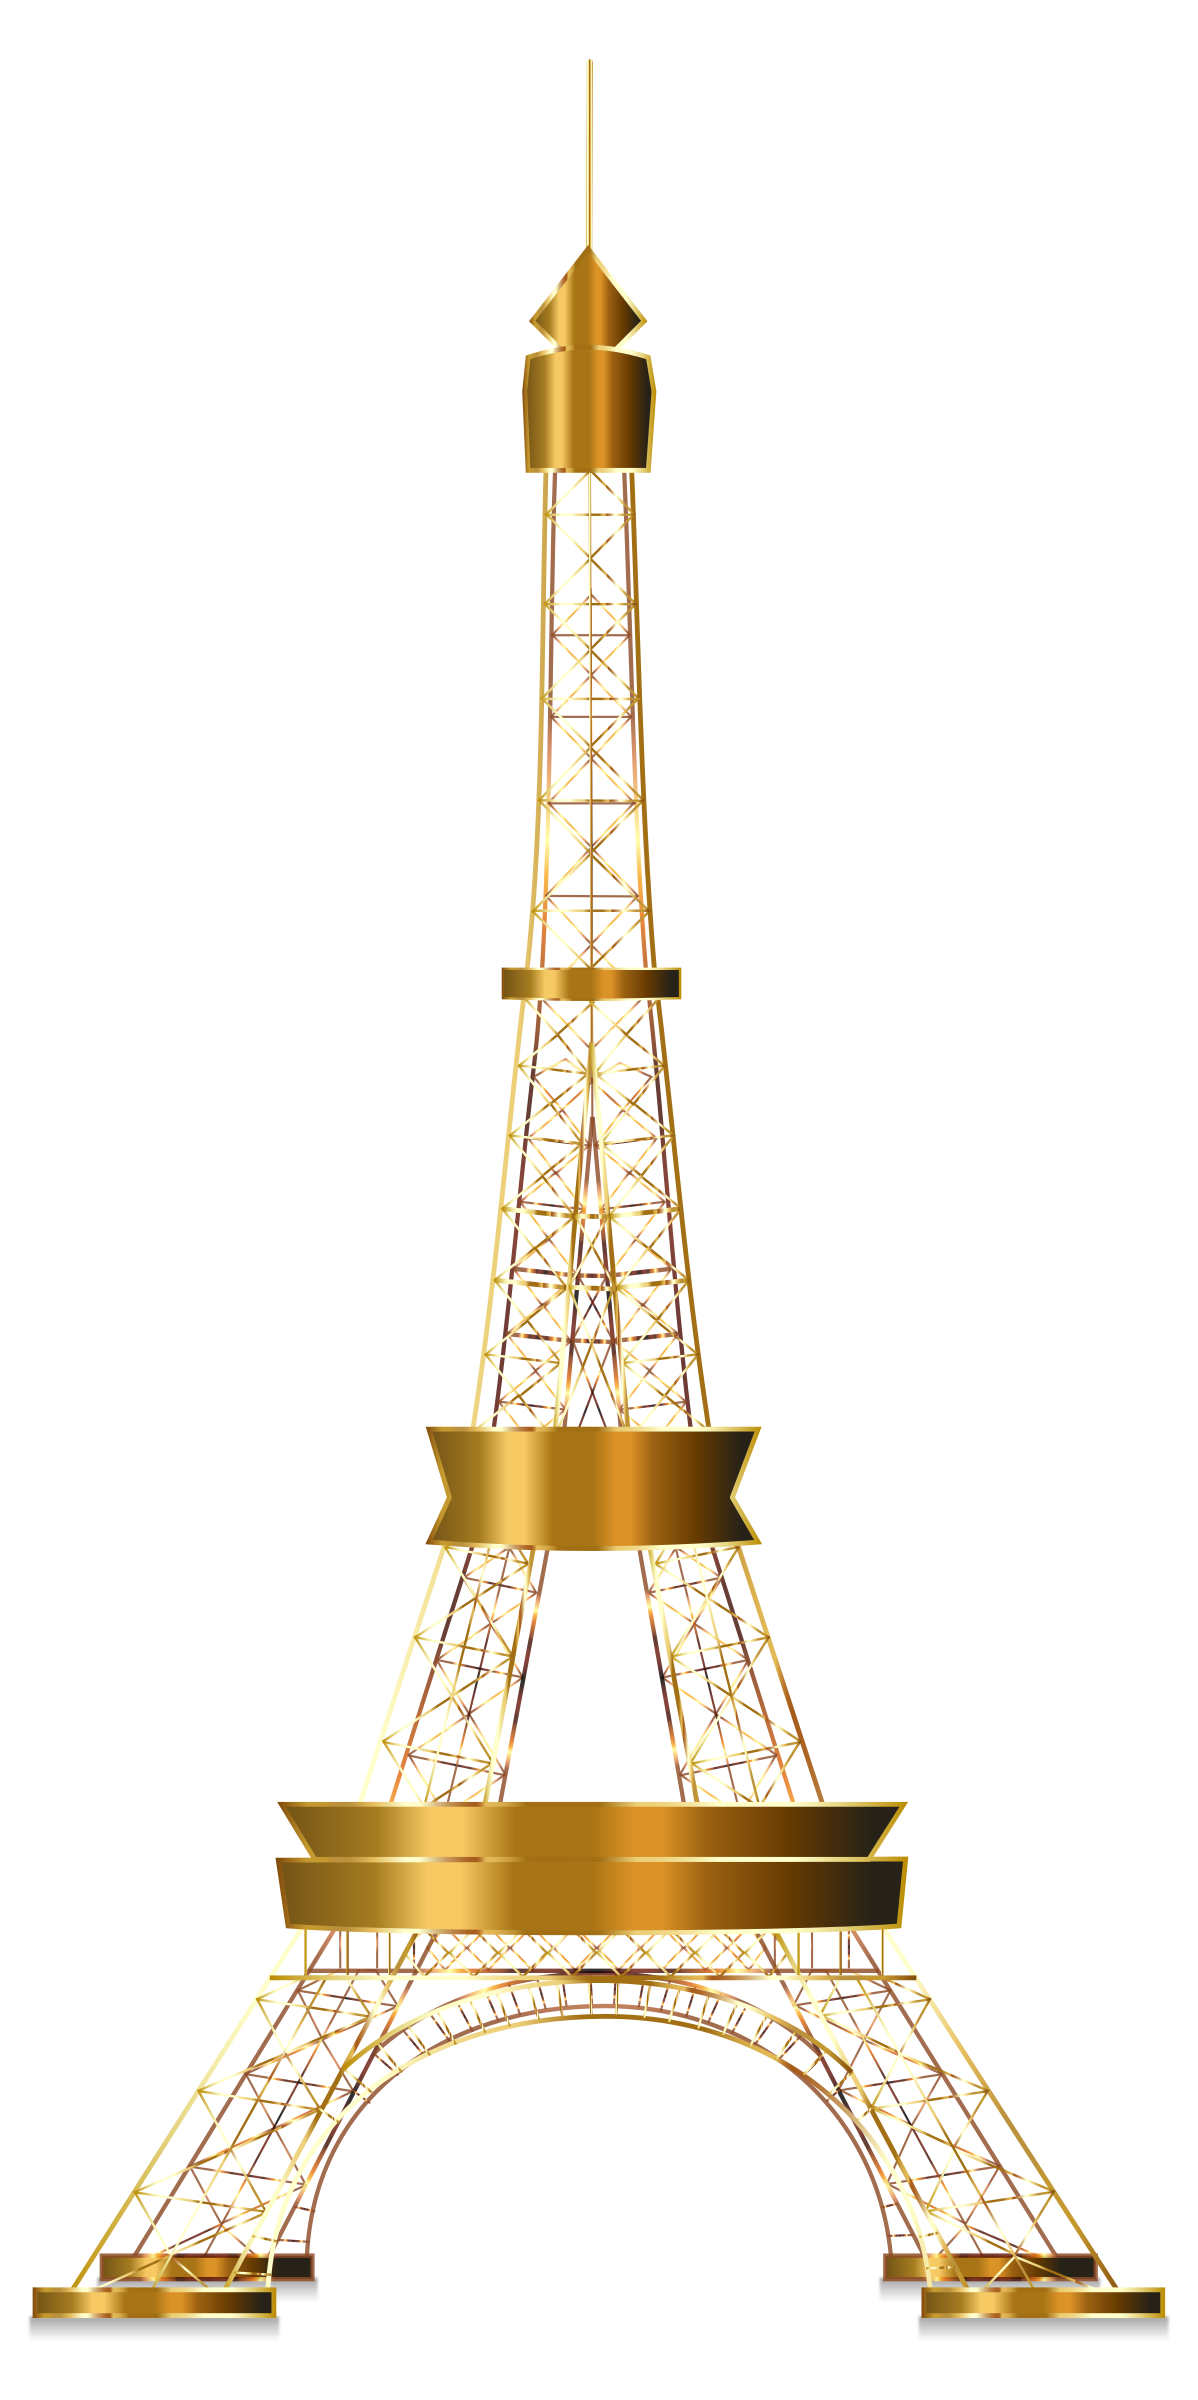 Eiffel Tower Two Gold No Background by GDJ